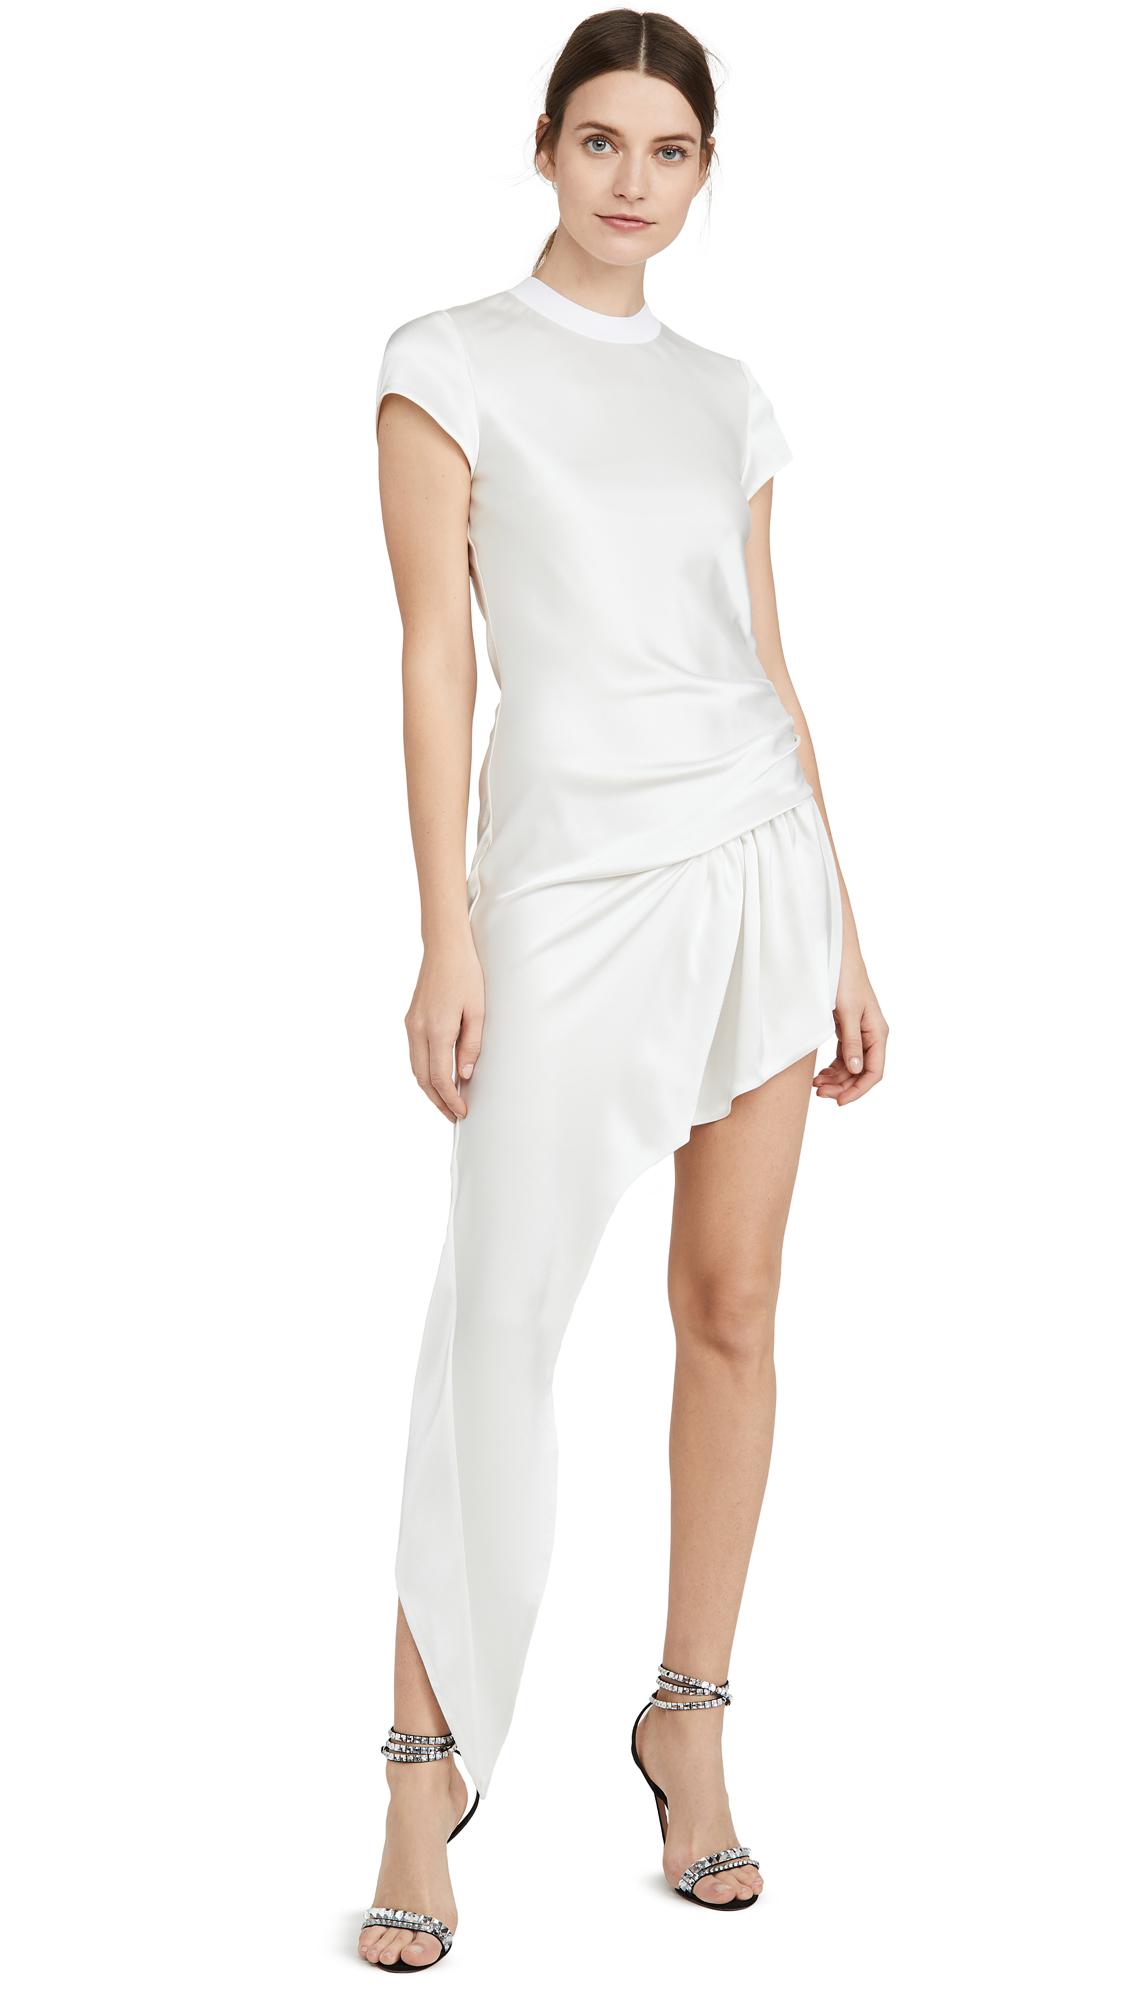 Alexander Wang Exposed Leg Short Sleeve Dress - 50% Off Sale